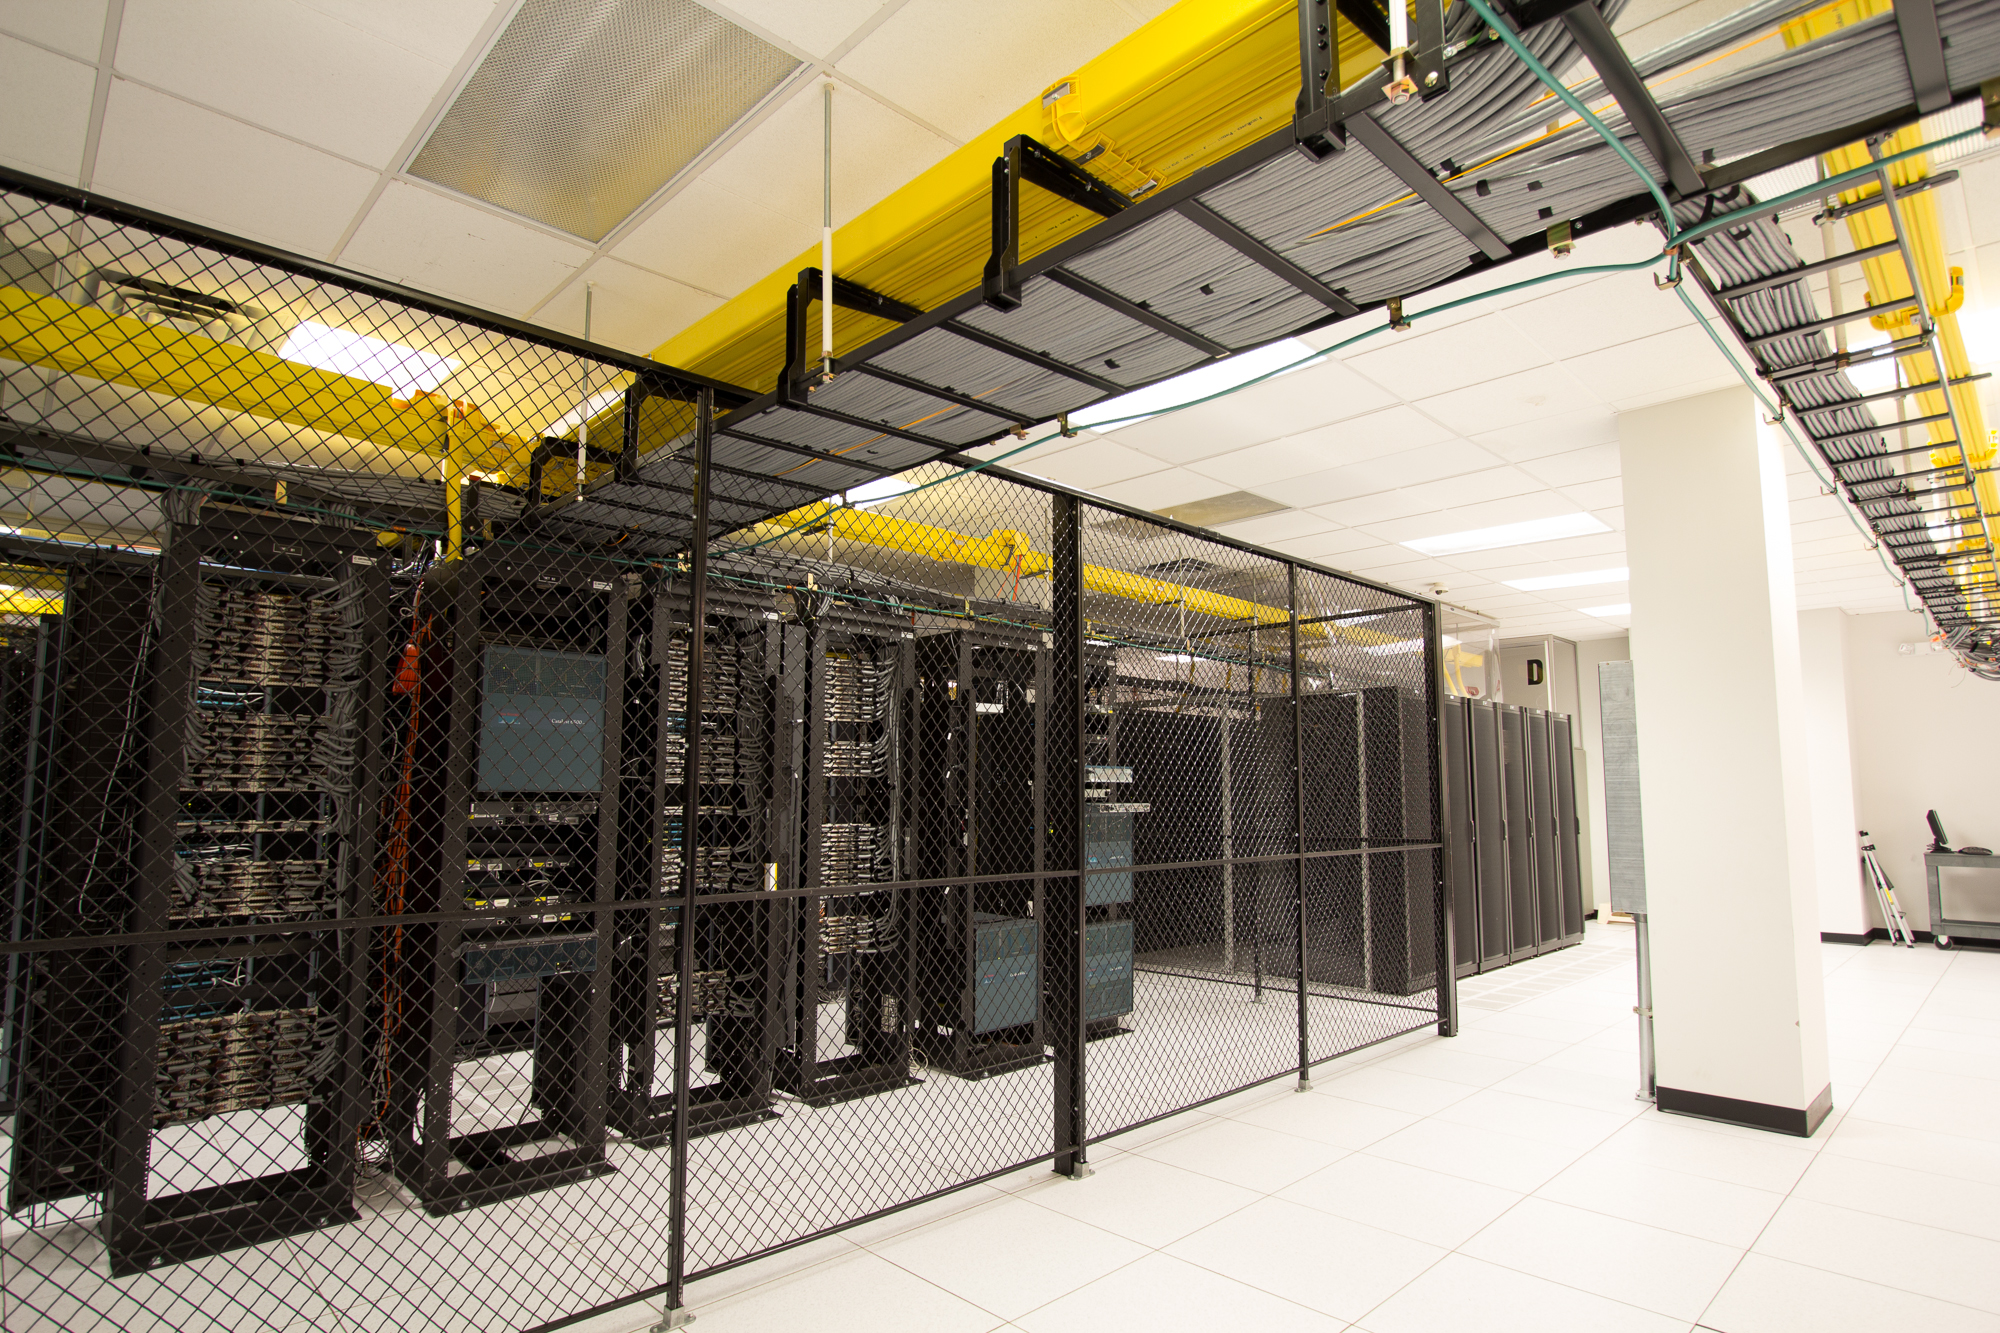 The core infrastructure is protected via a secure and locked cage.